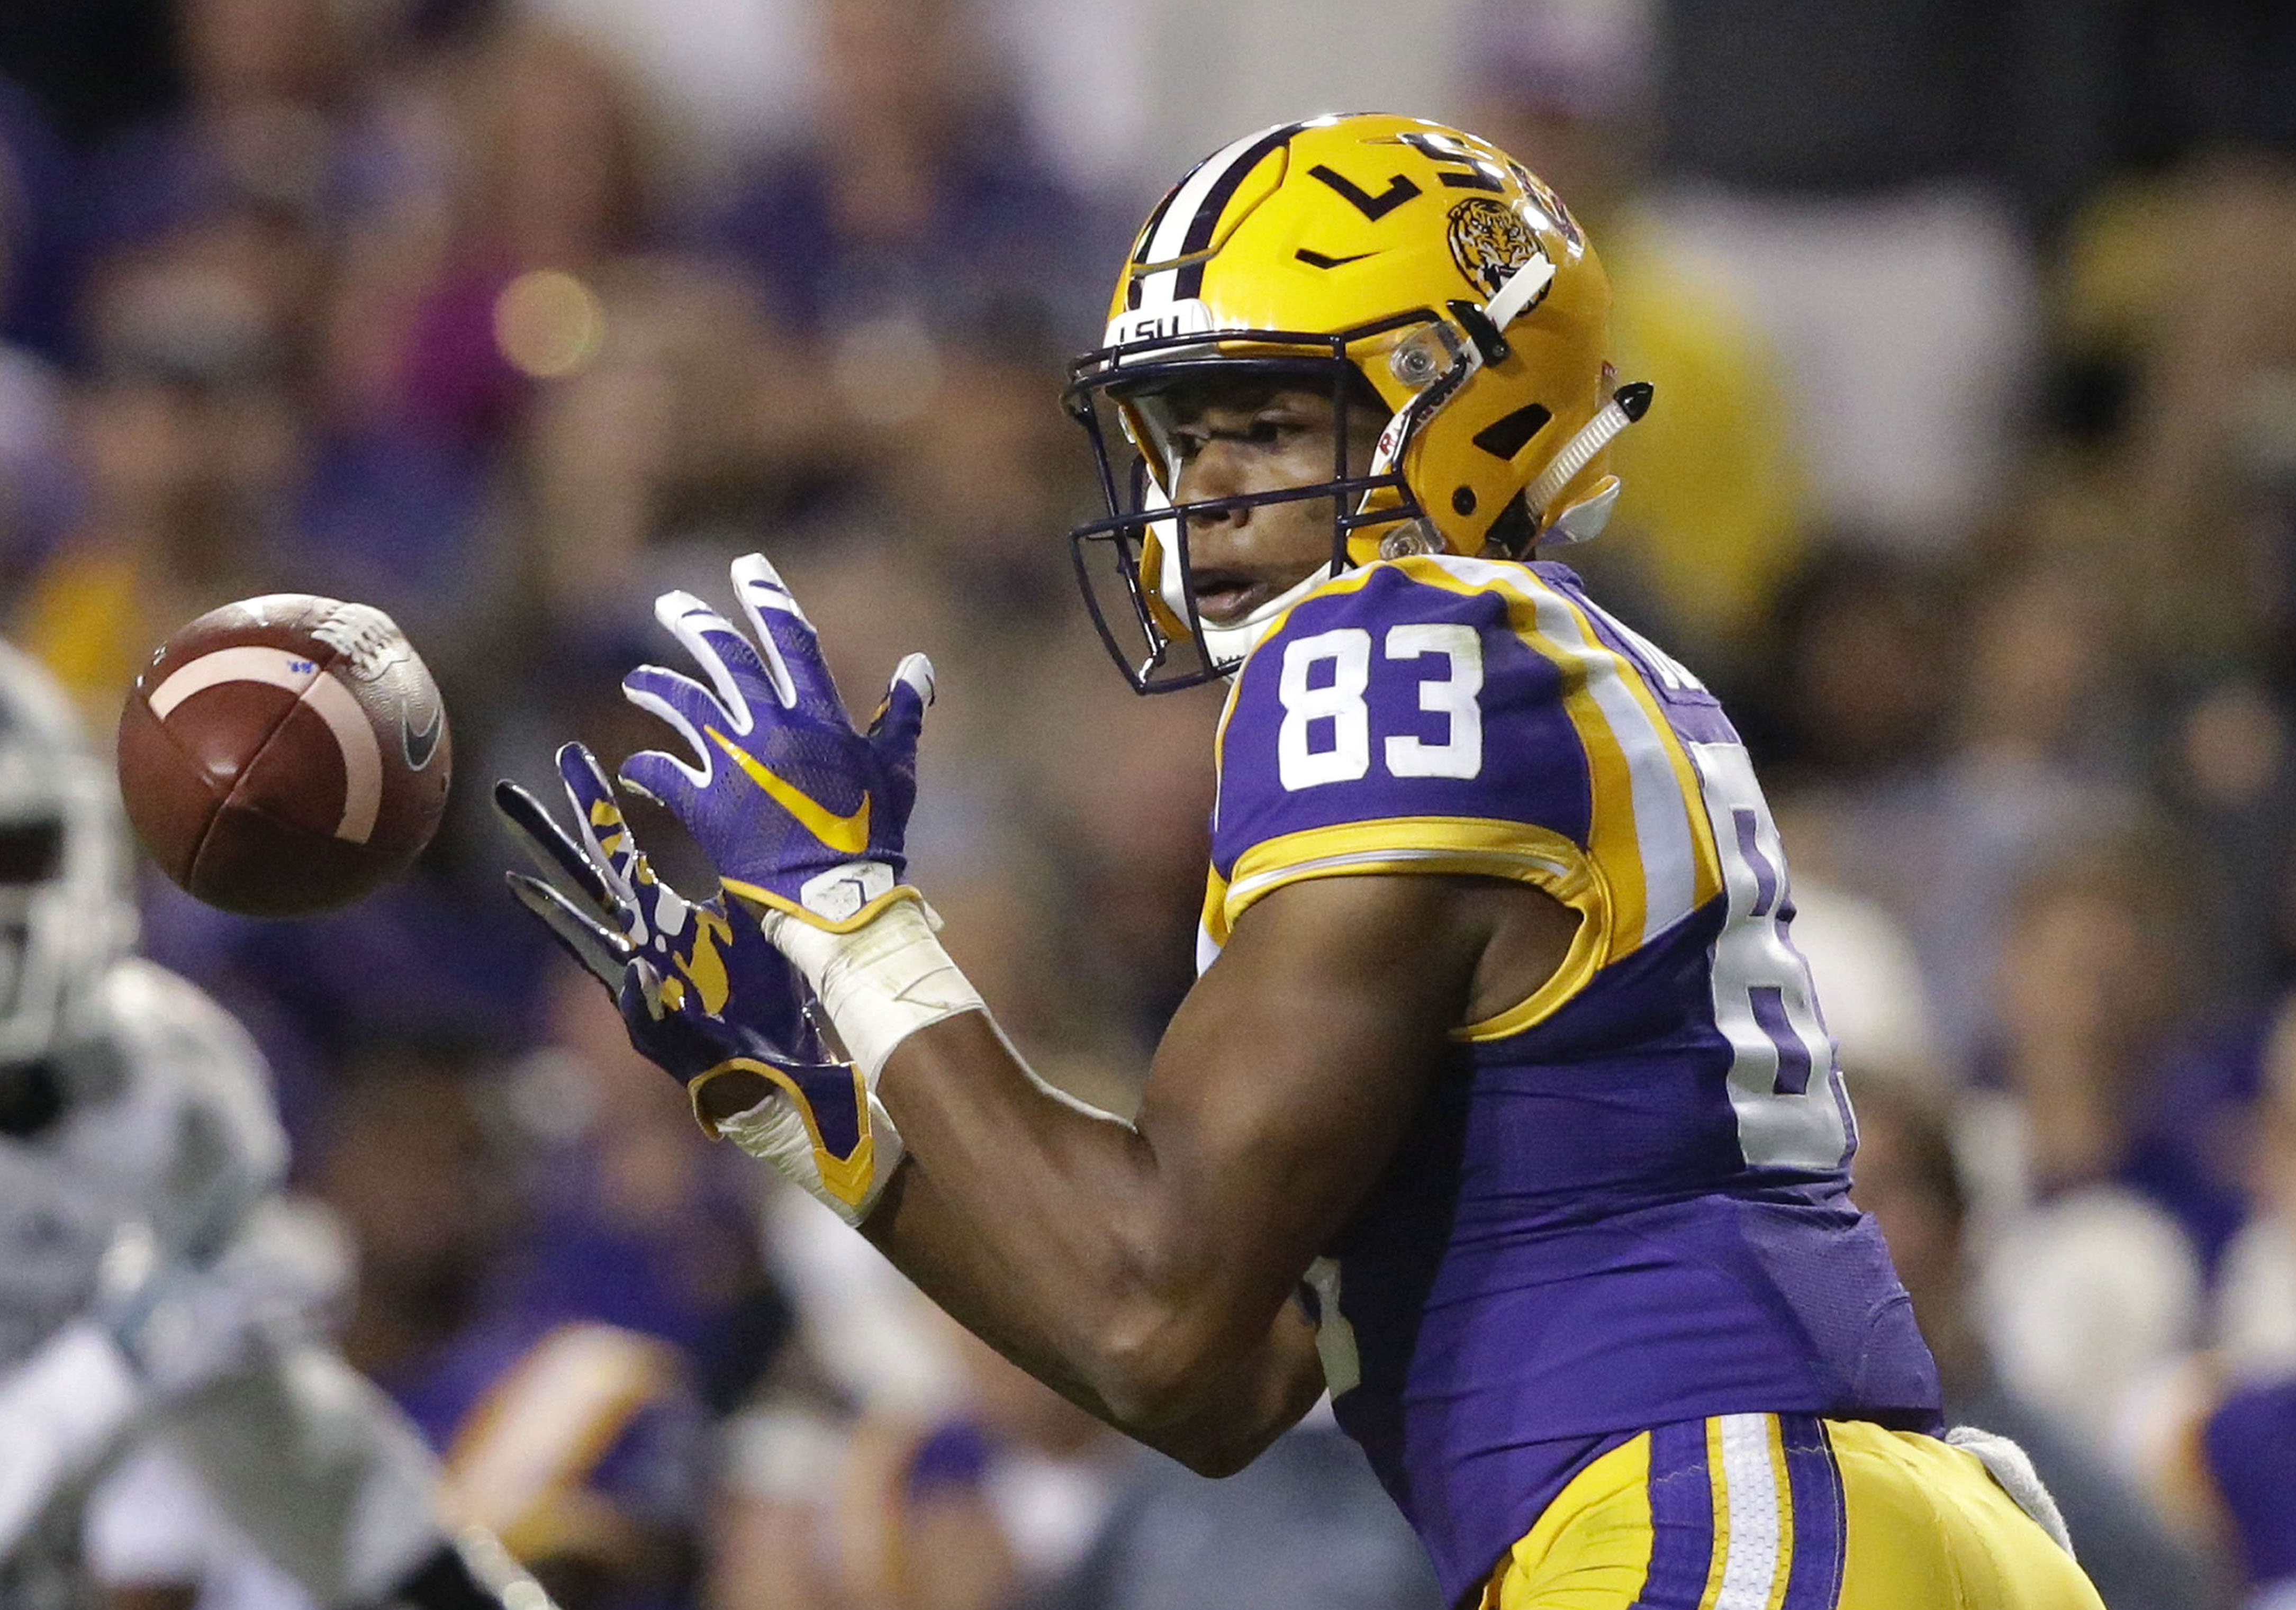 LSU wide receiver Travin Dural (83) drops a pass on third down deep in Eastern Michigan territory in the first half of an NCAA college football game in Baton Rouge, La., Saturday, Oct. 3, 2015. (AP Photo/Gerald Herbert)